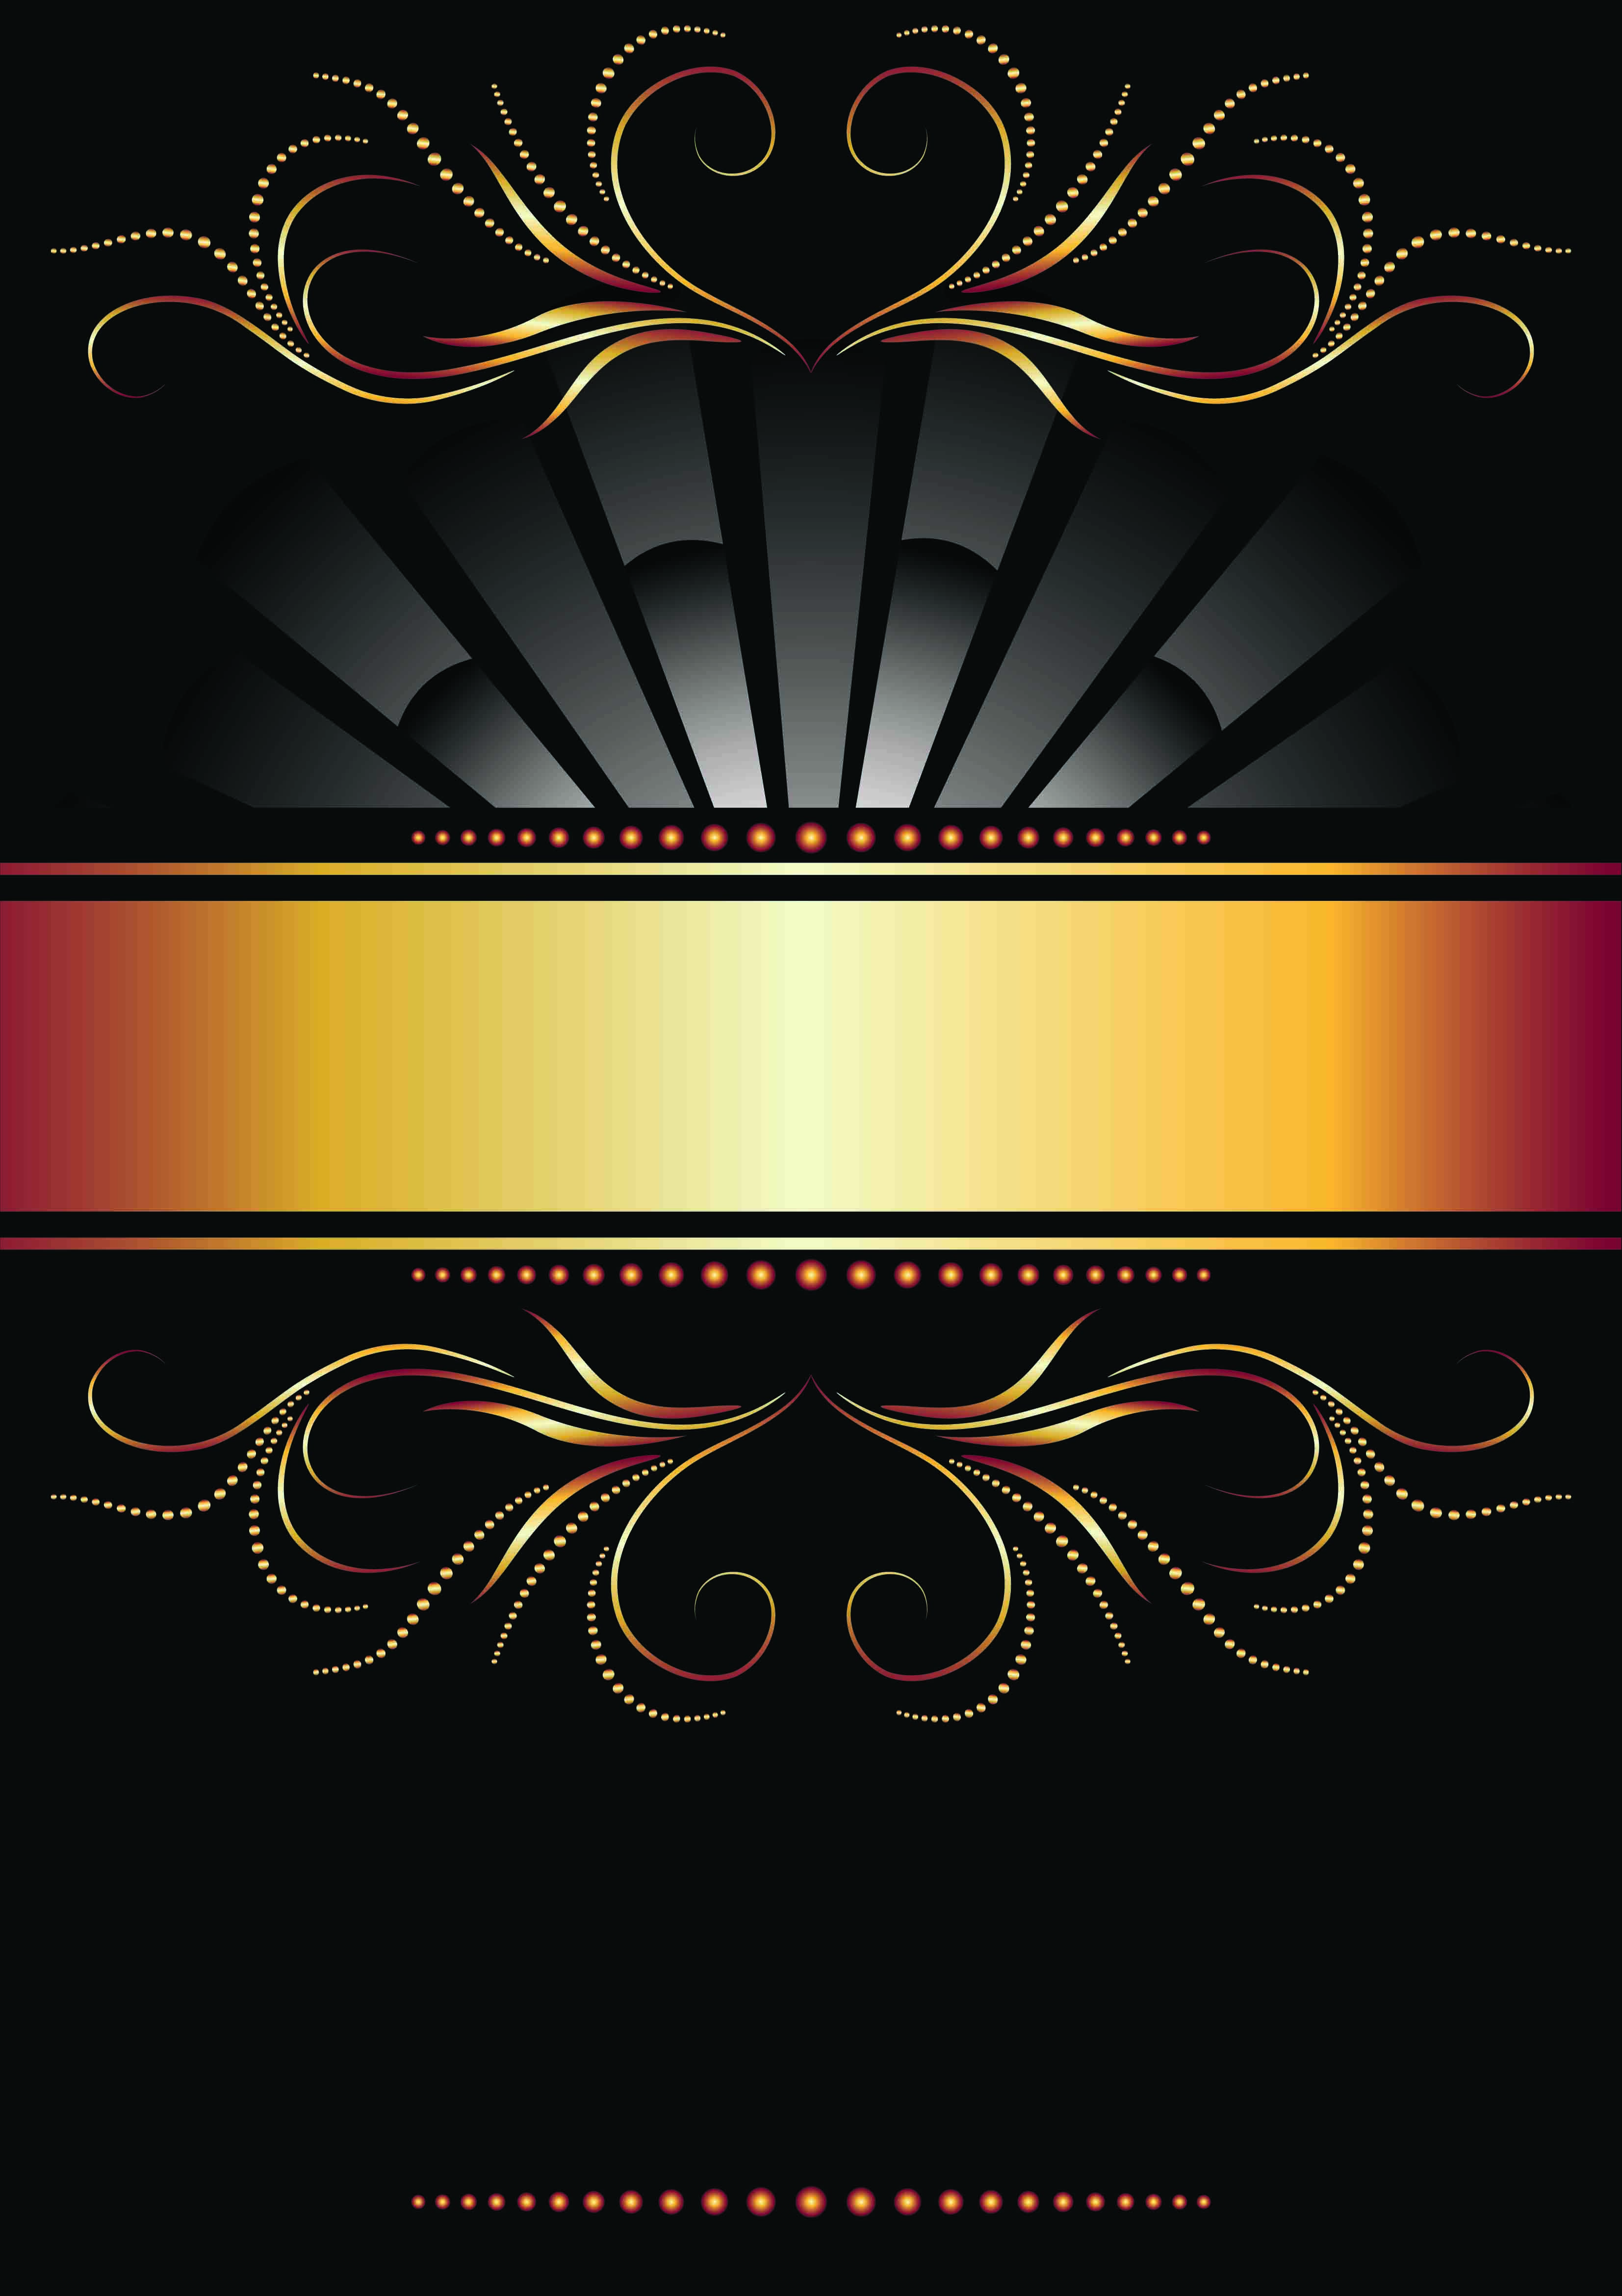 Wallpapers For Black And Gold Background Poster Background Design Golden Background Gold Background